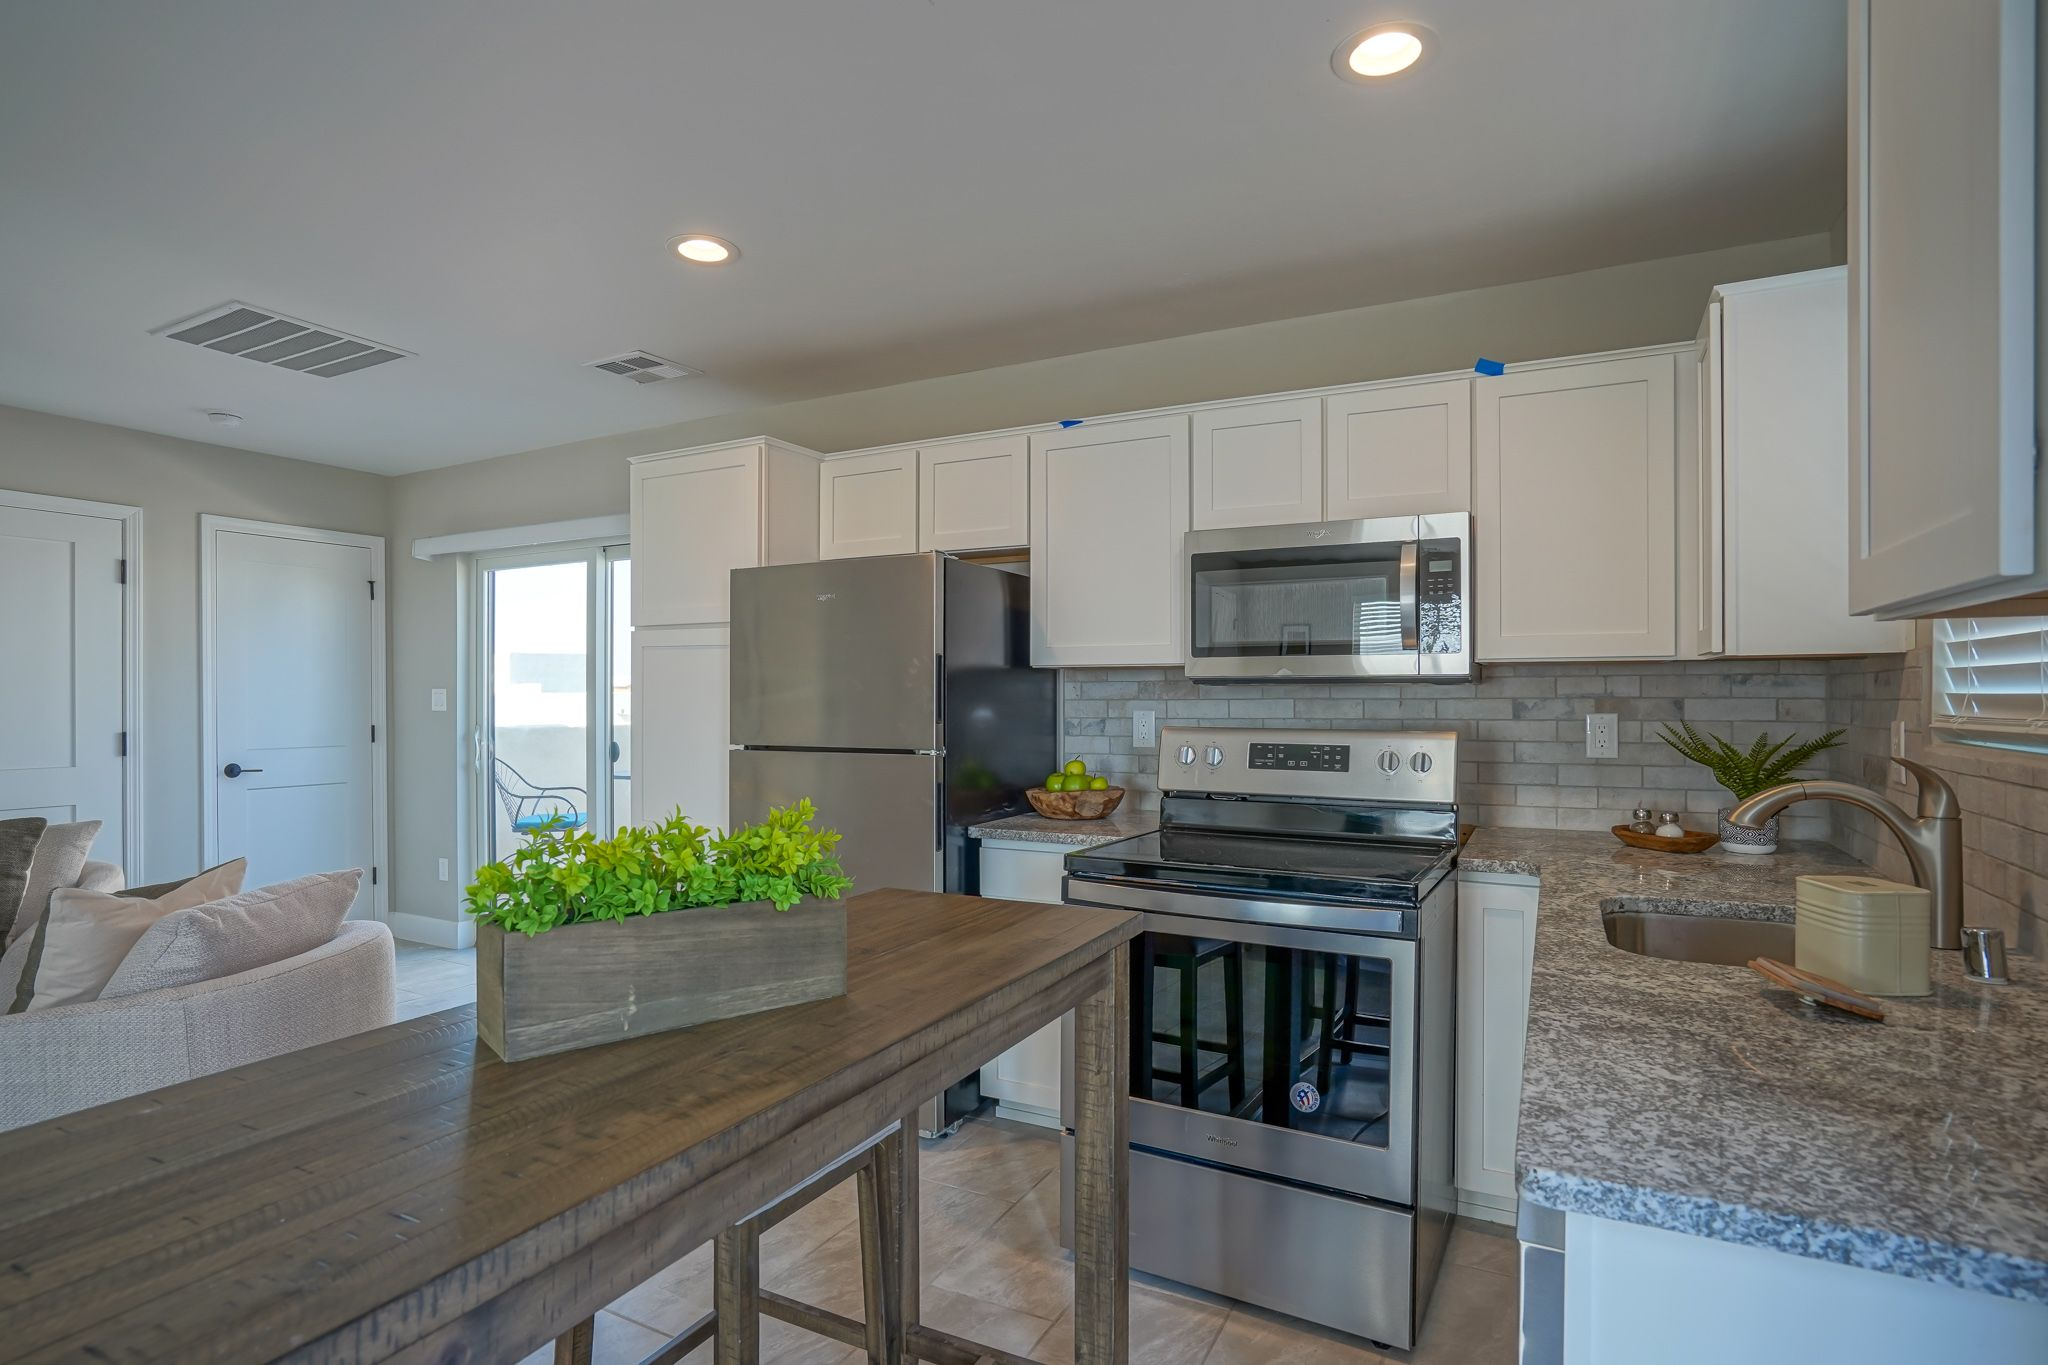 Kitchen featured in The Stout By Abrazo Homes in Albuquerque, NM